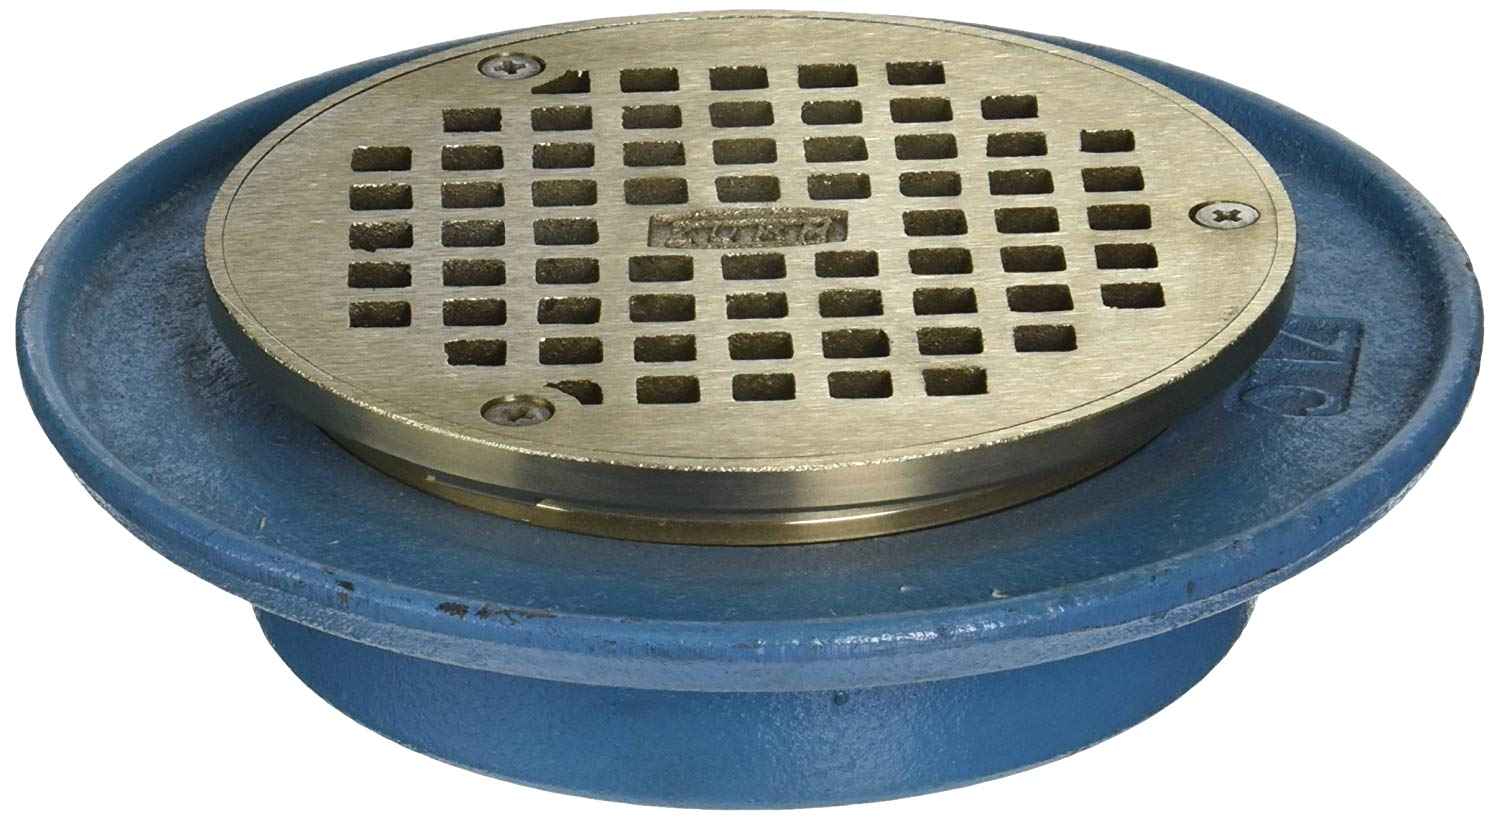 zurn fd2322 ip2 low profile adjustable area floor drain 2 ips connection amazon com industrial scientific